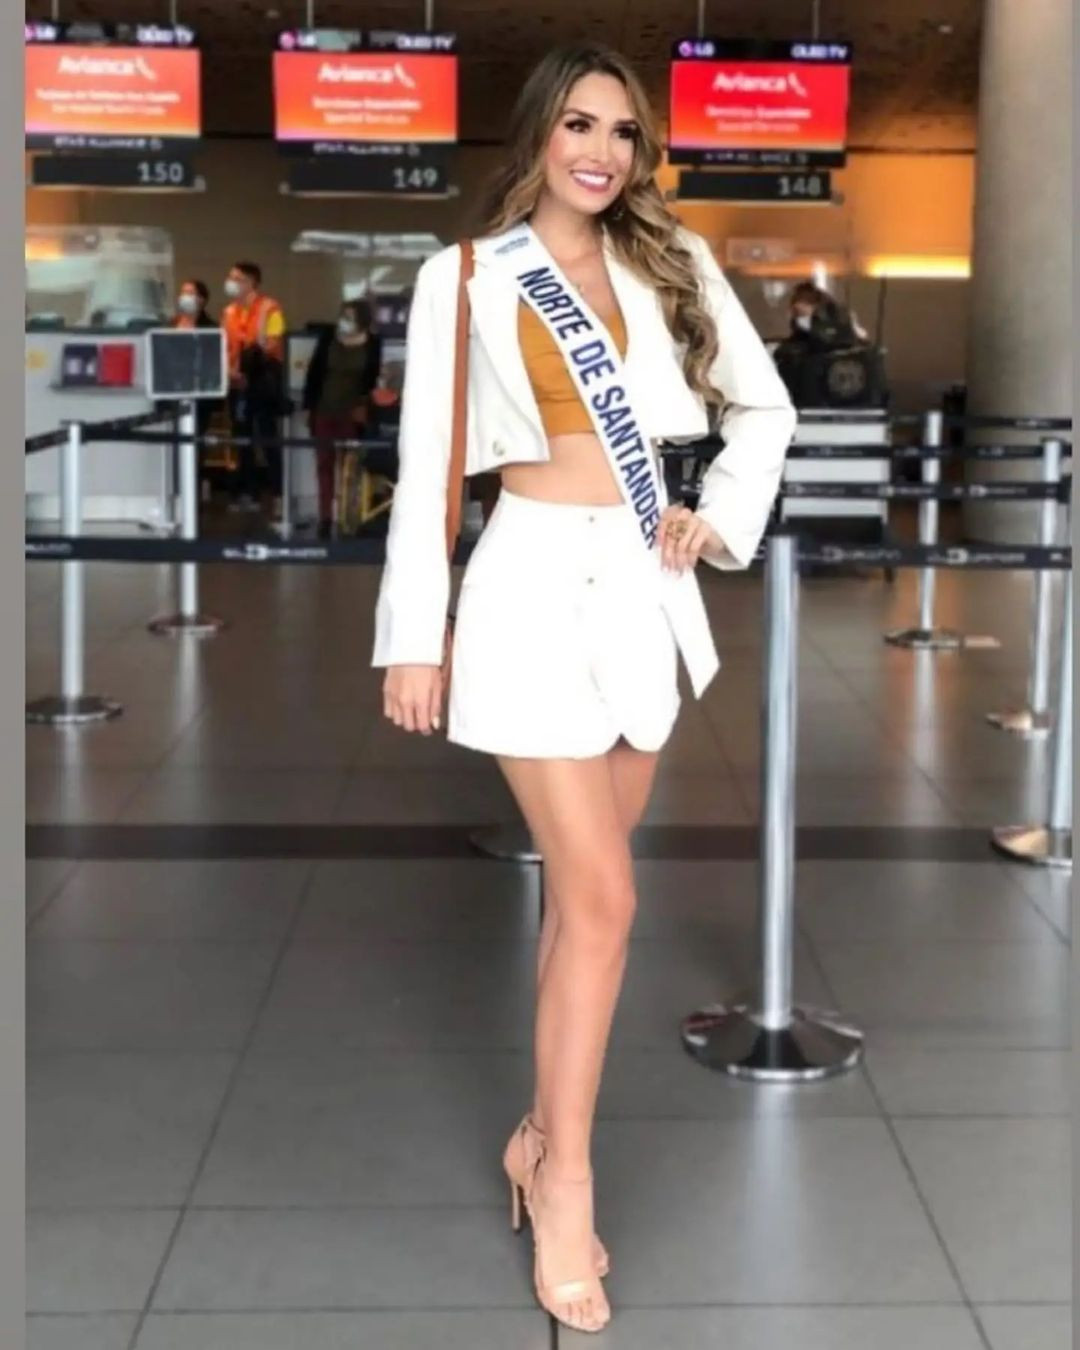 candidatas a miss universe colombia 2021. final: 18 oct. sede: neiva. - Página 4 52820G